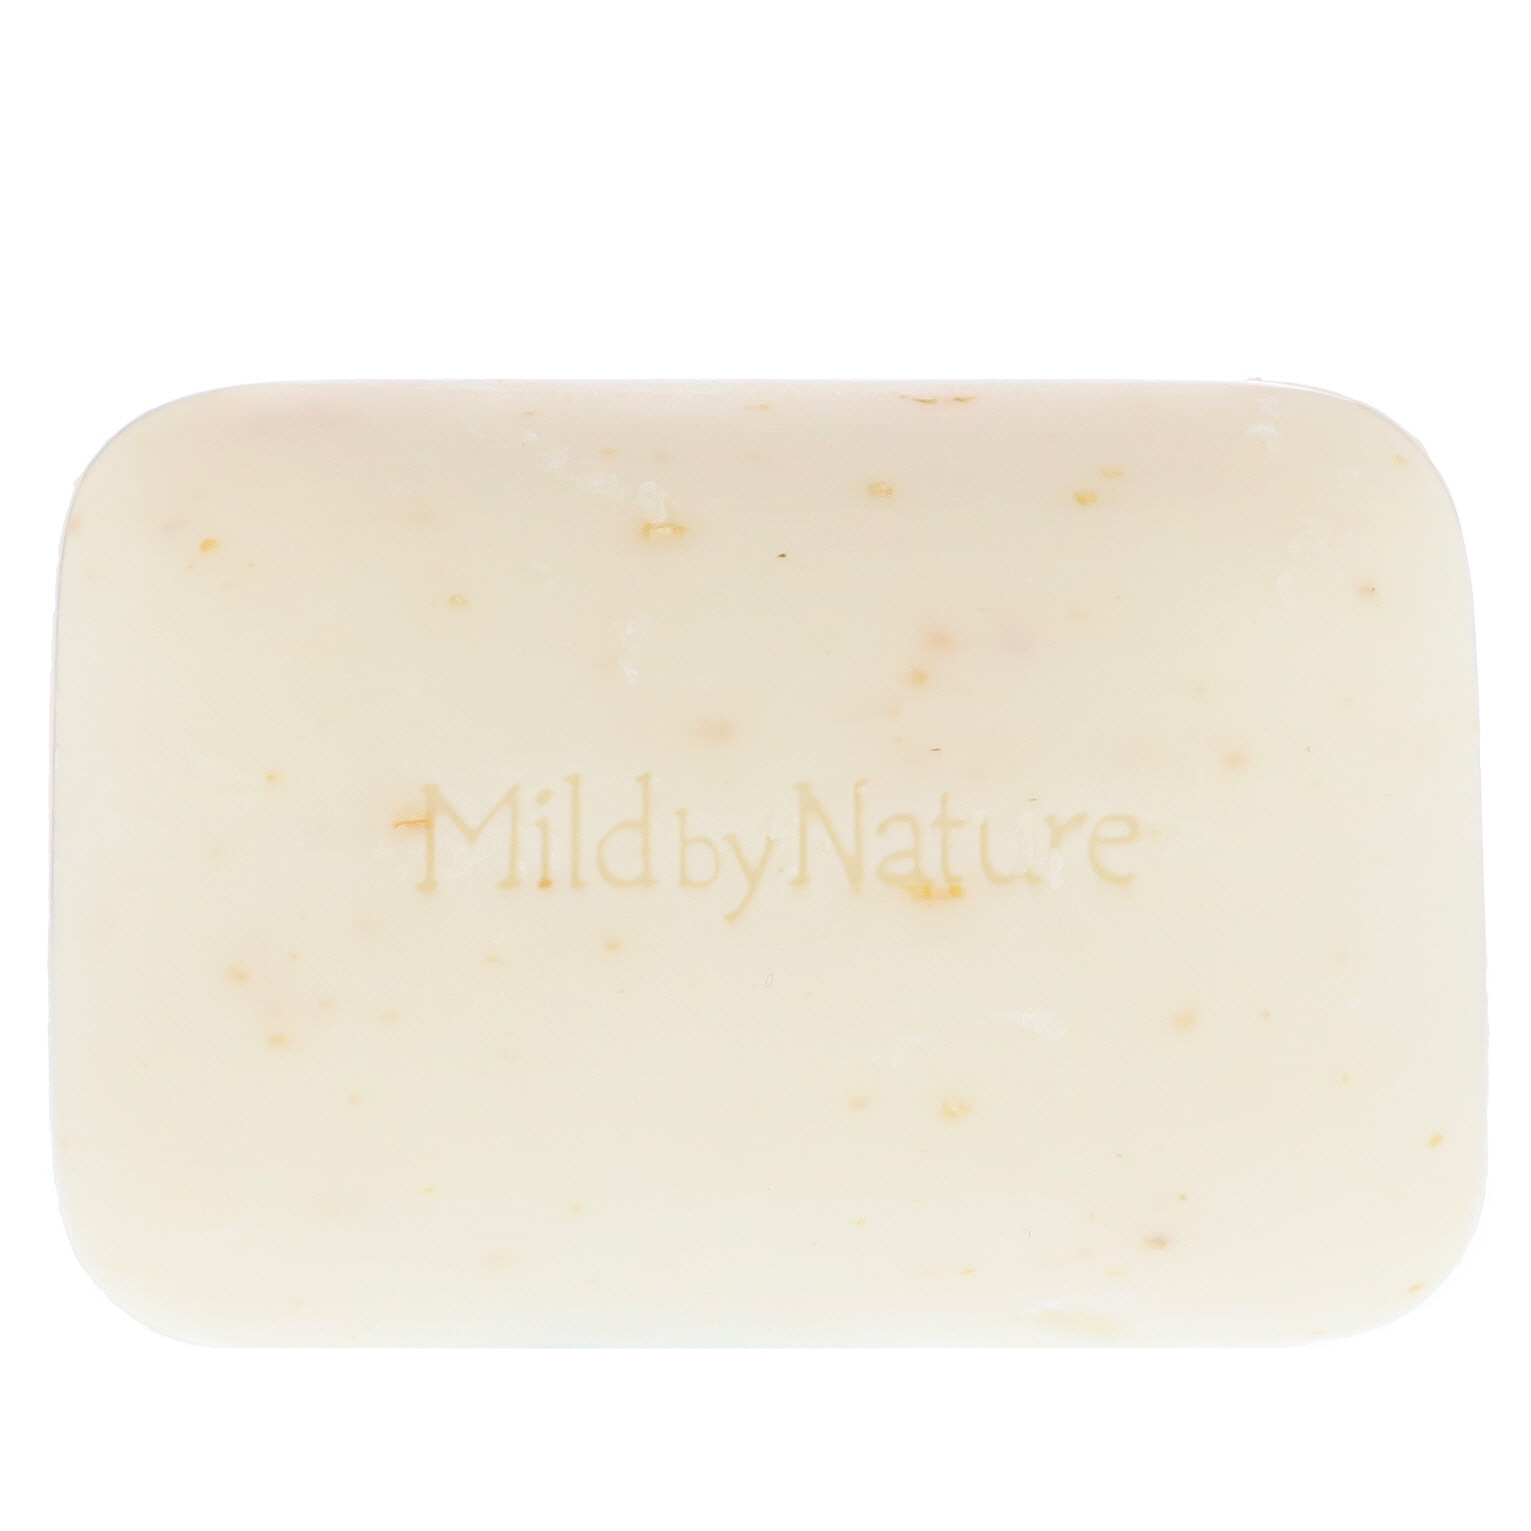 Mild By Nature, Relaxing Bar Soap, Oatmeal & Honey, 5 oz (141 g